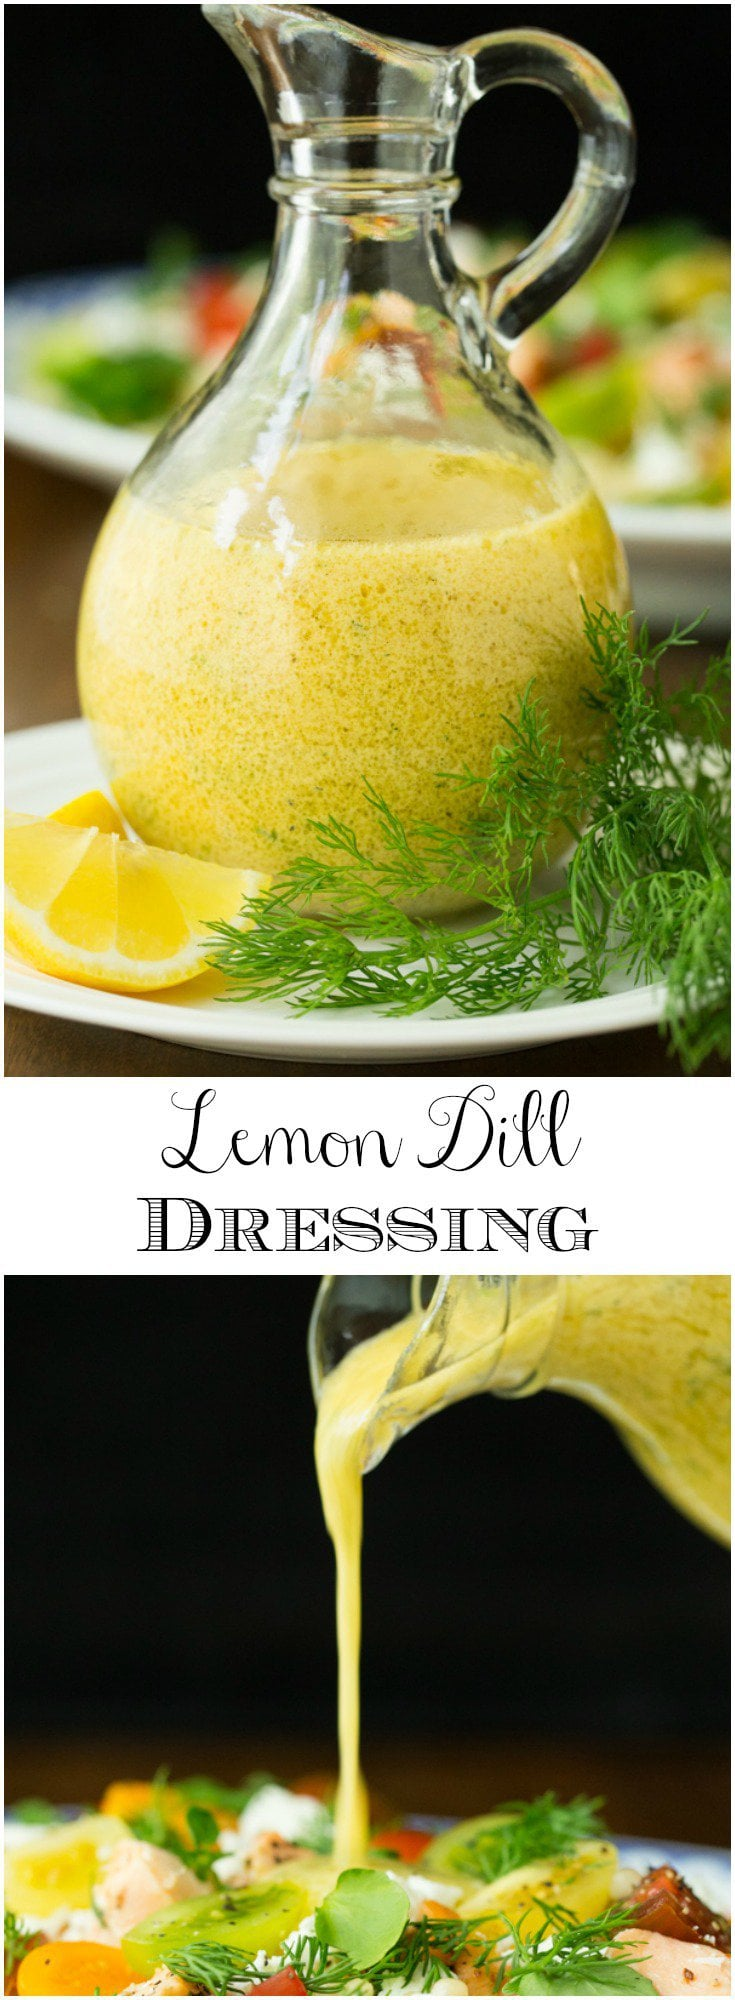 With bright, fresh flavor, this easy Lemon Dill Dressing is perfect with greens and veggies as well as chicken, fish and shrimp!